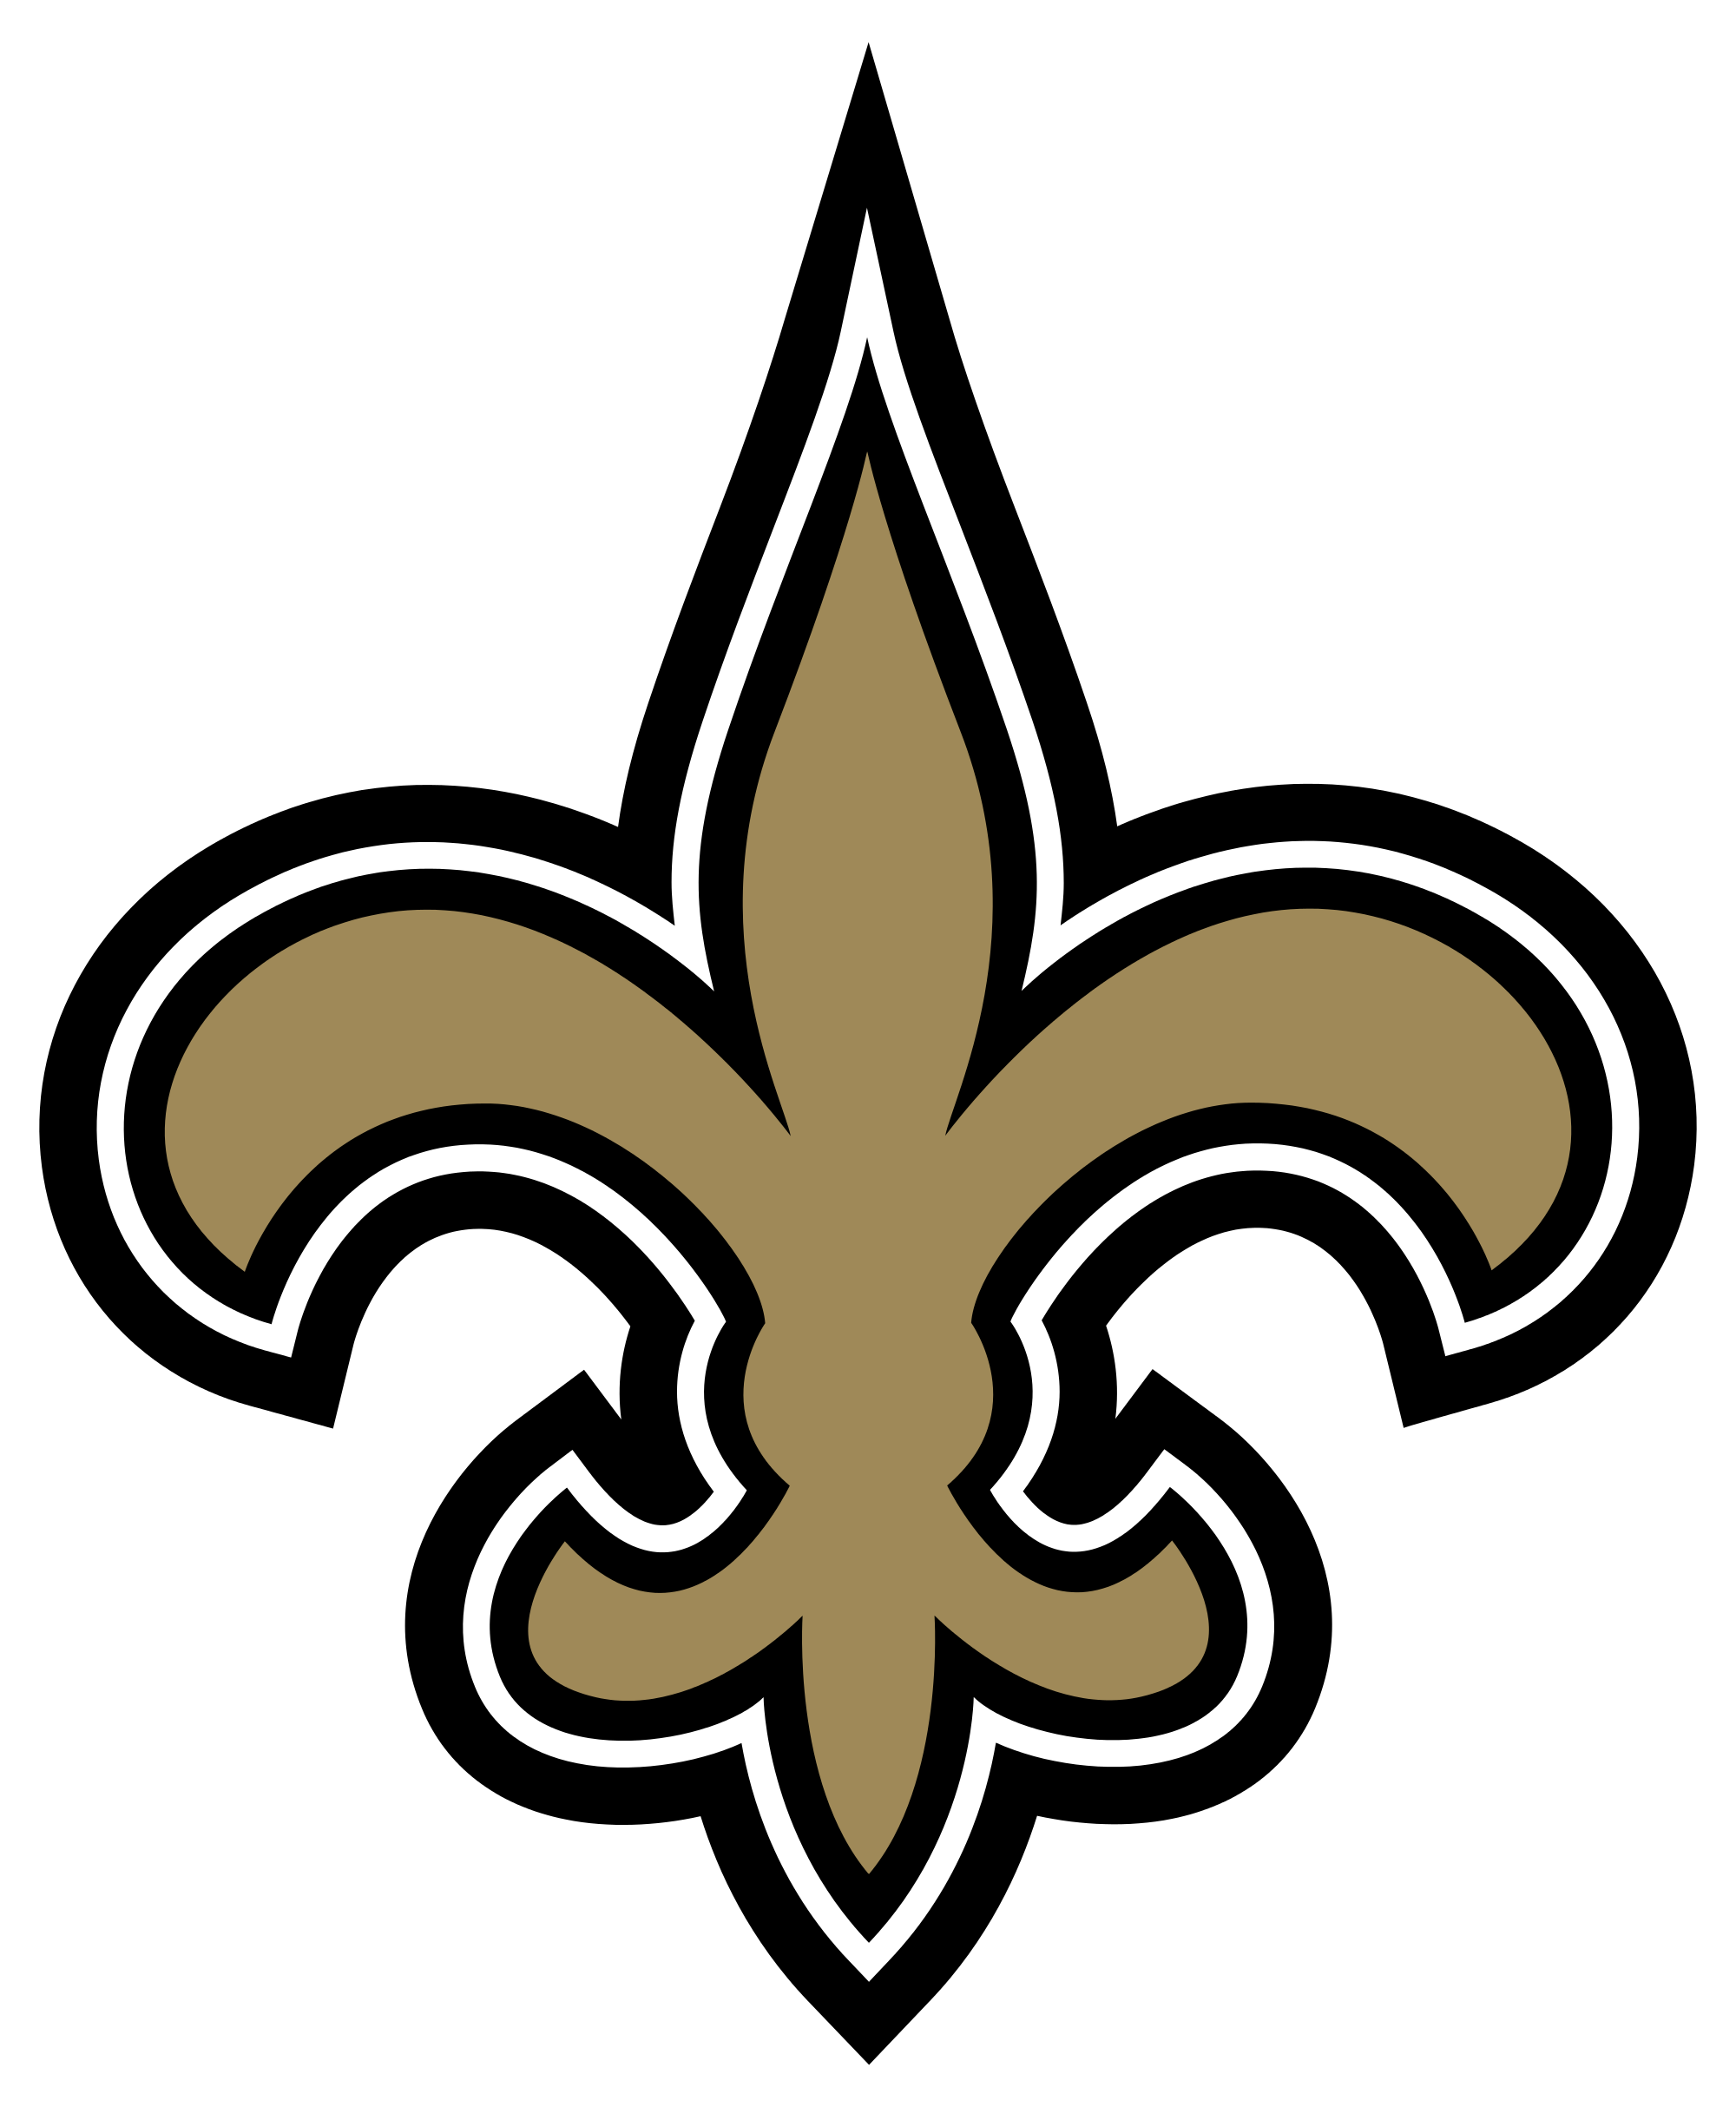 Saints logo png. File new orleans svg